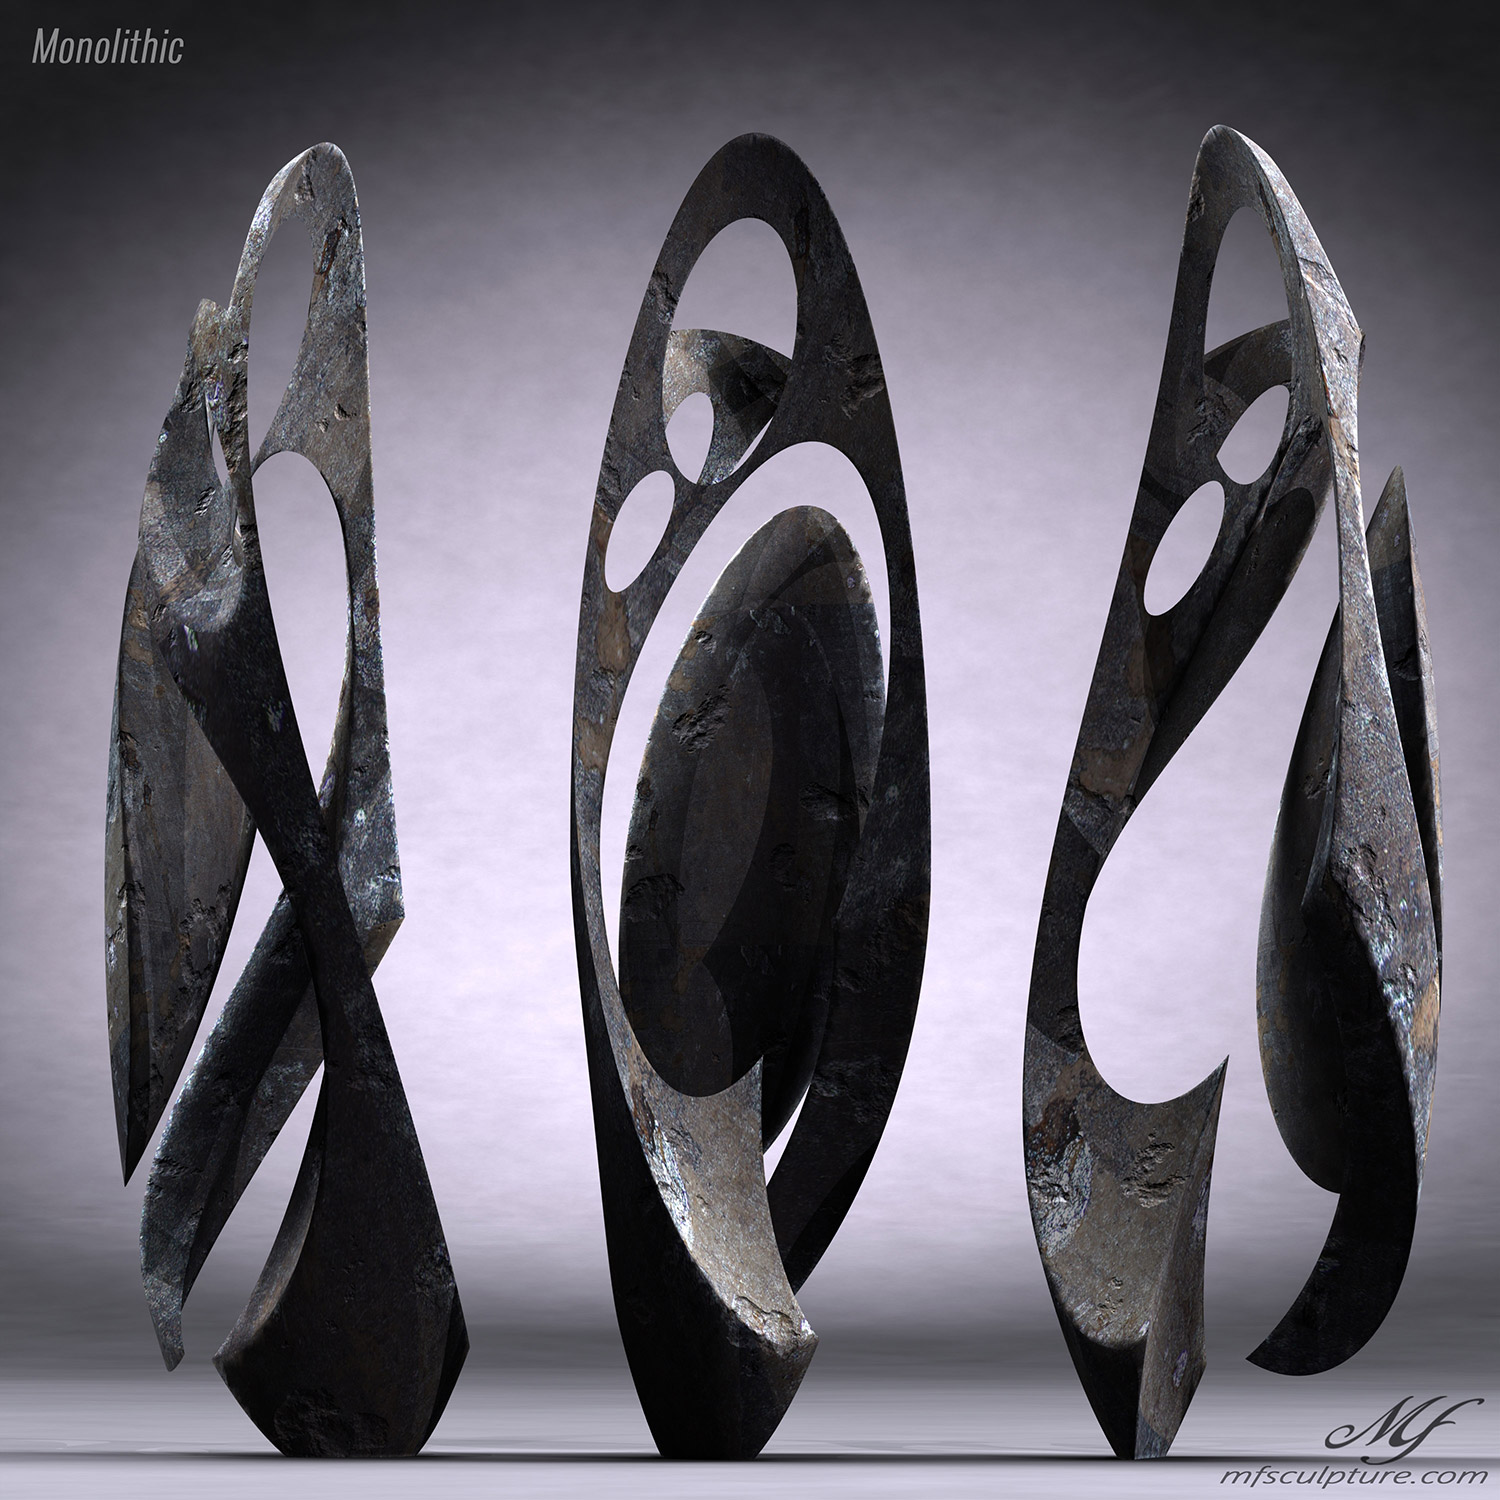 Monolithic Abstract Contemporary Sculpture Mike Fields 5